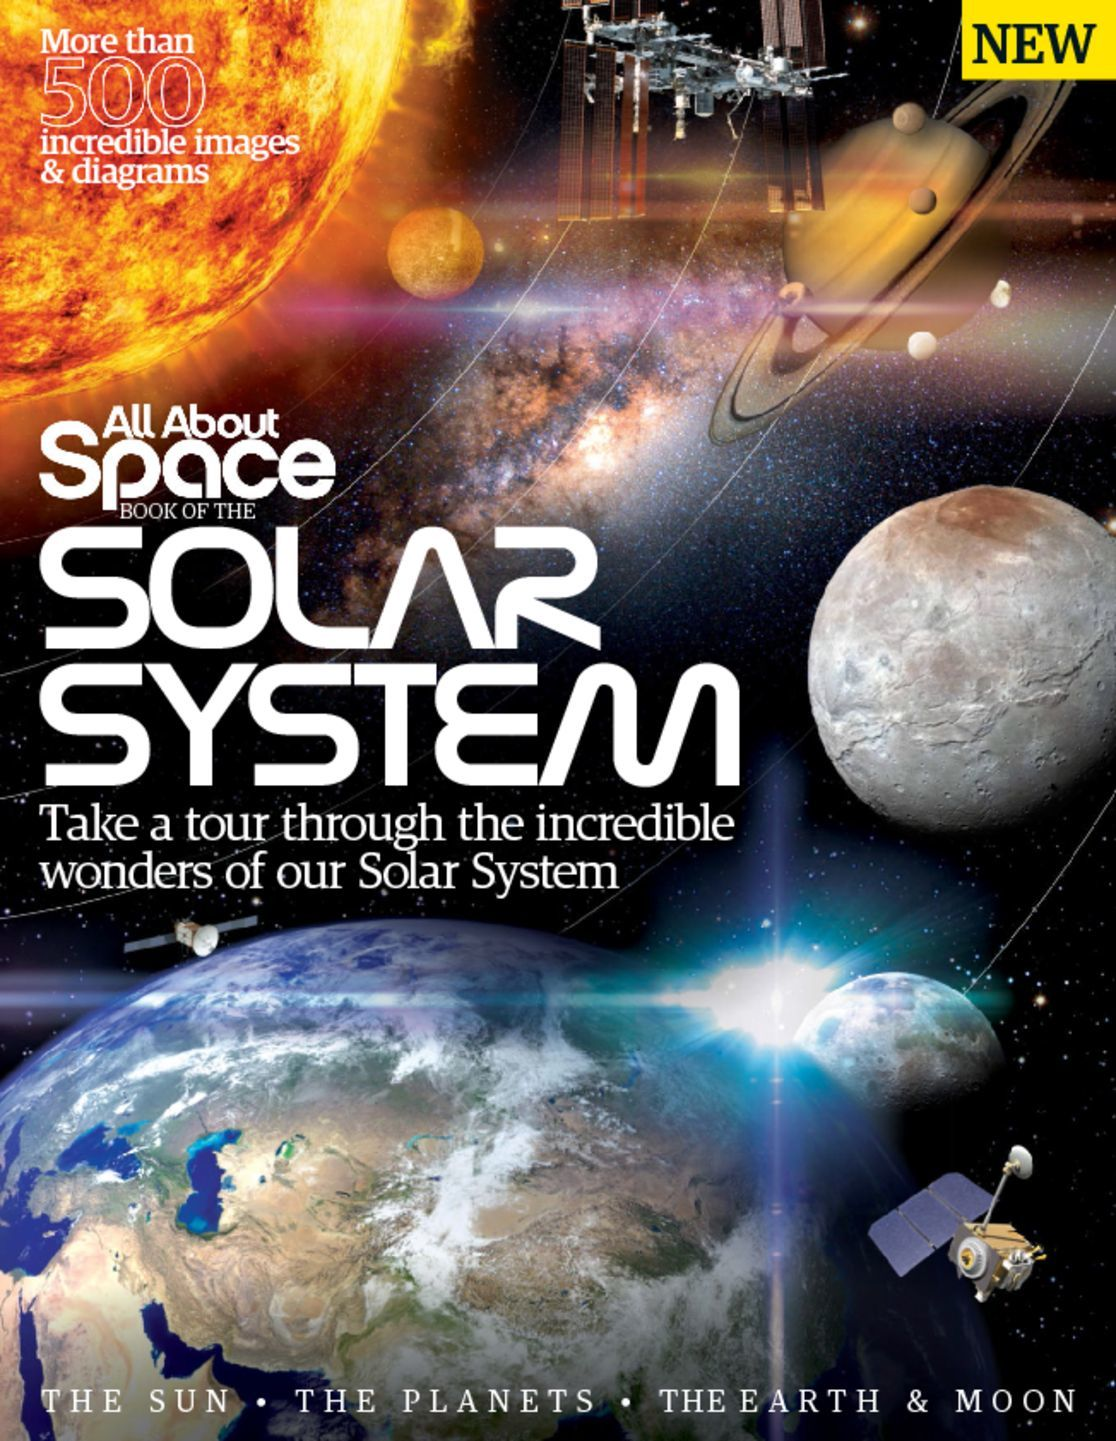 All About Space Book of the Solar System Digital